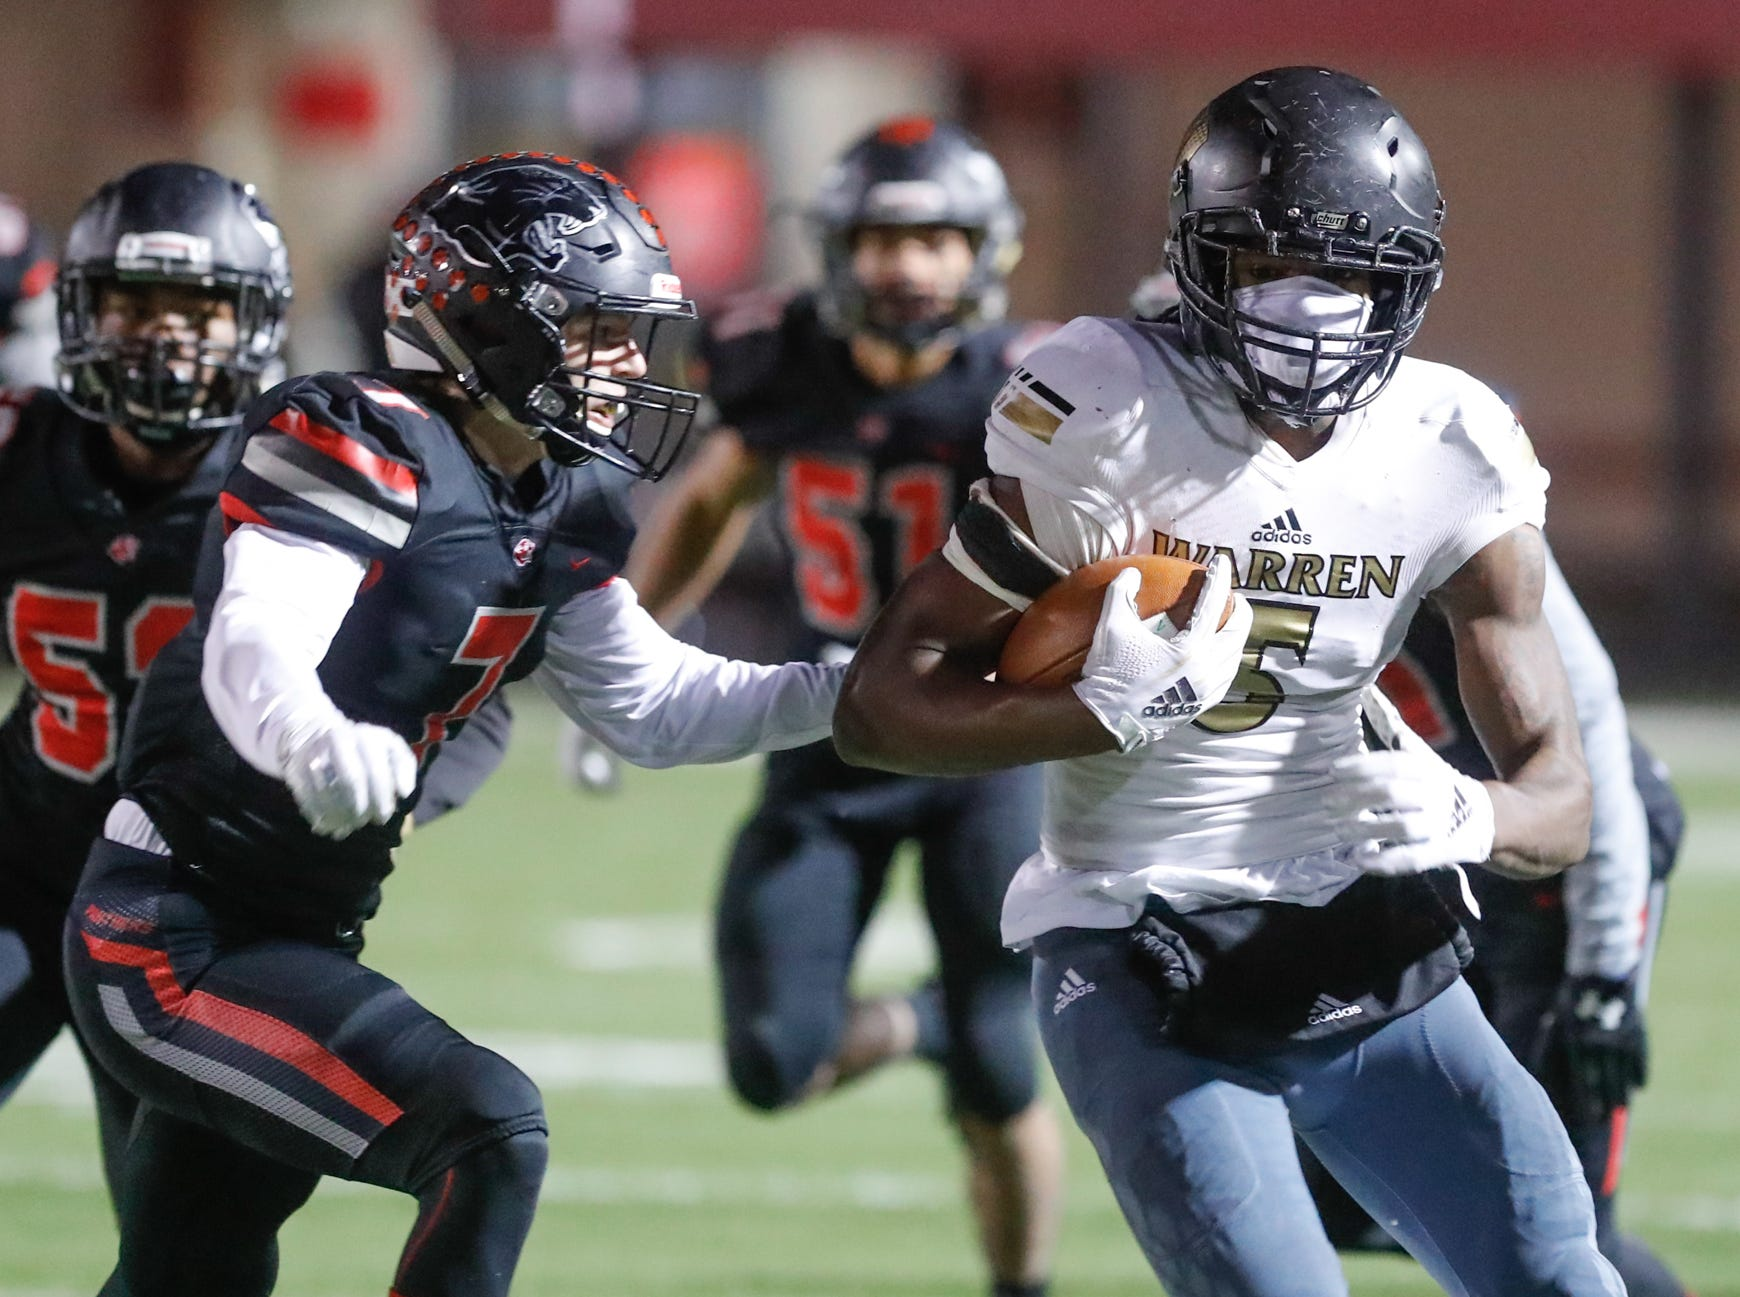 Warren Central High School Warriors tight end Montrez Stanley (5), runs the ball during a regional finals game against the North Central High School Panthers, at North Central High School on Friday, Nov. 9, 2018.